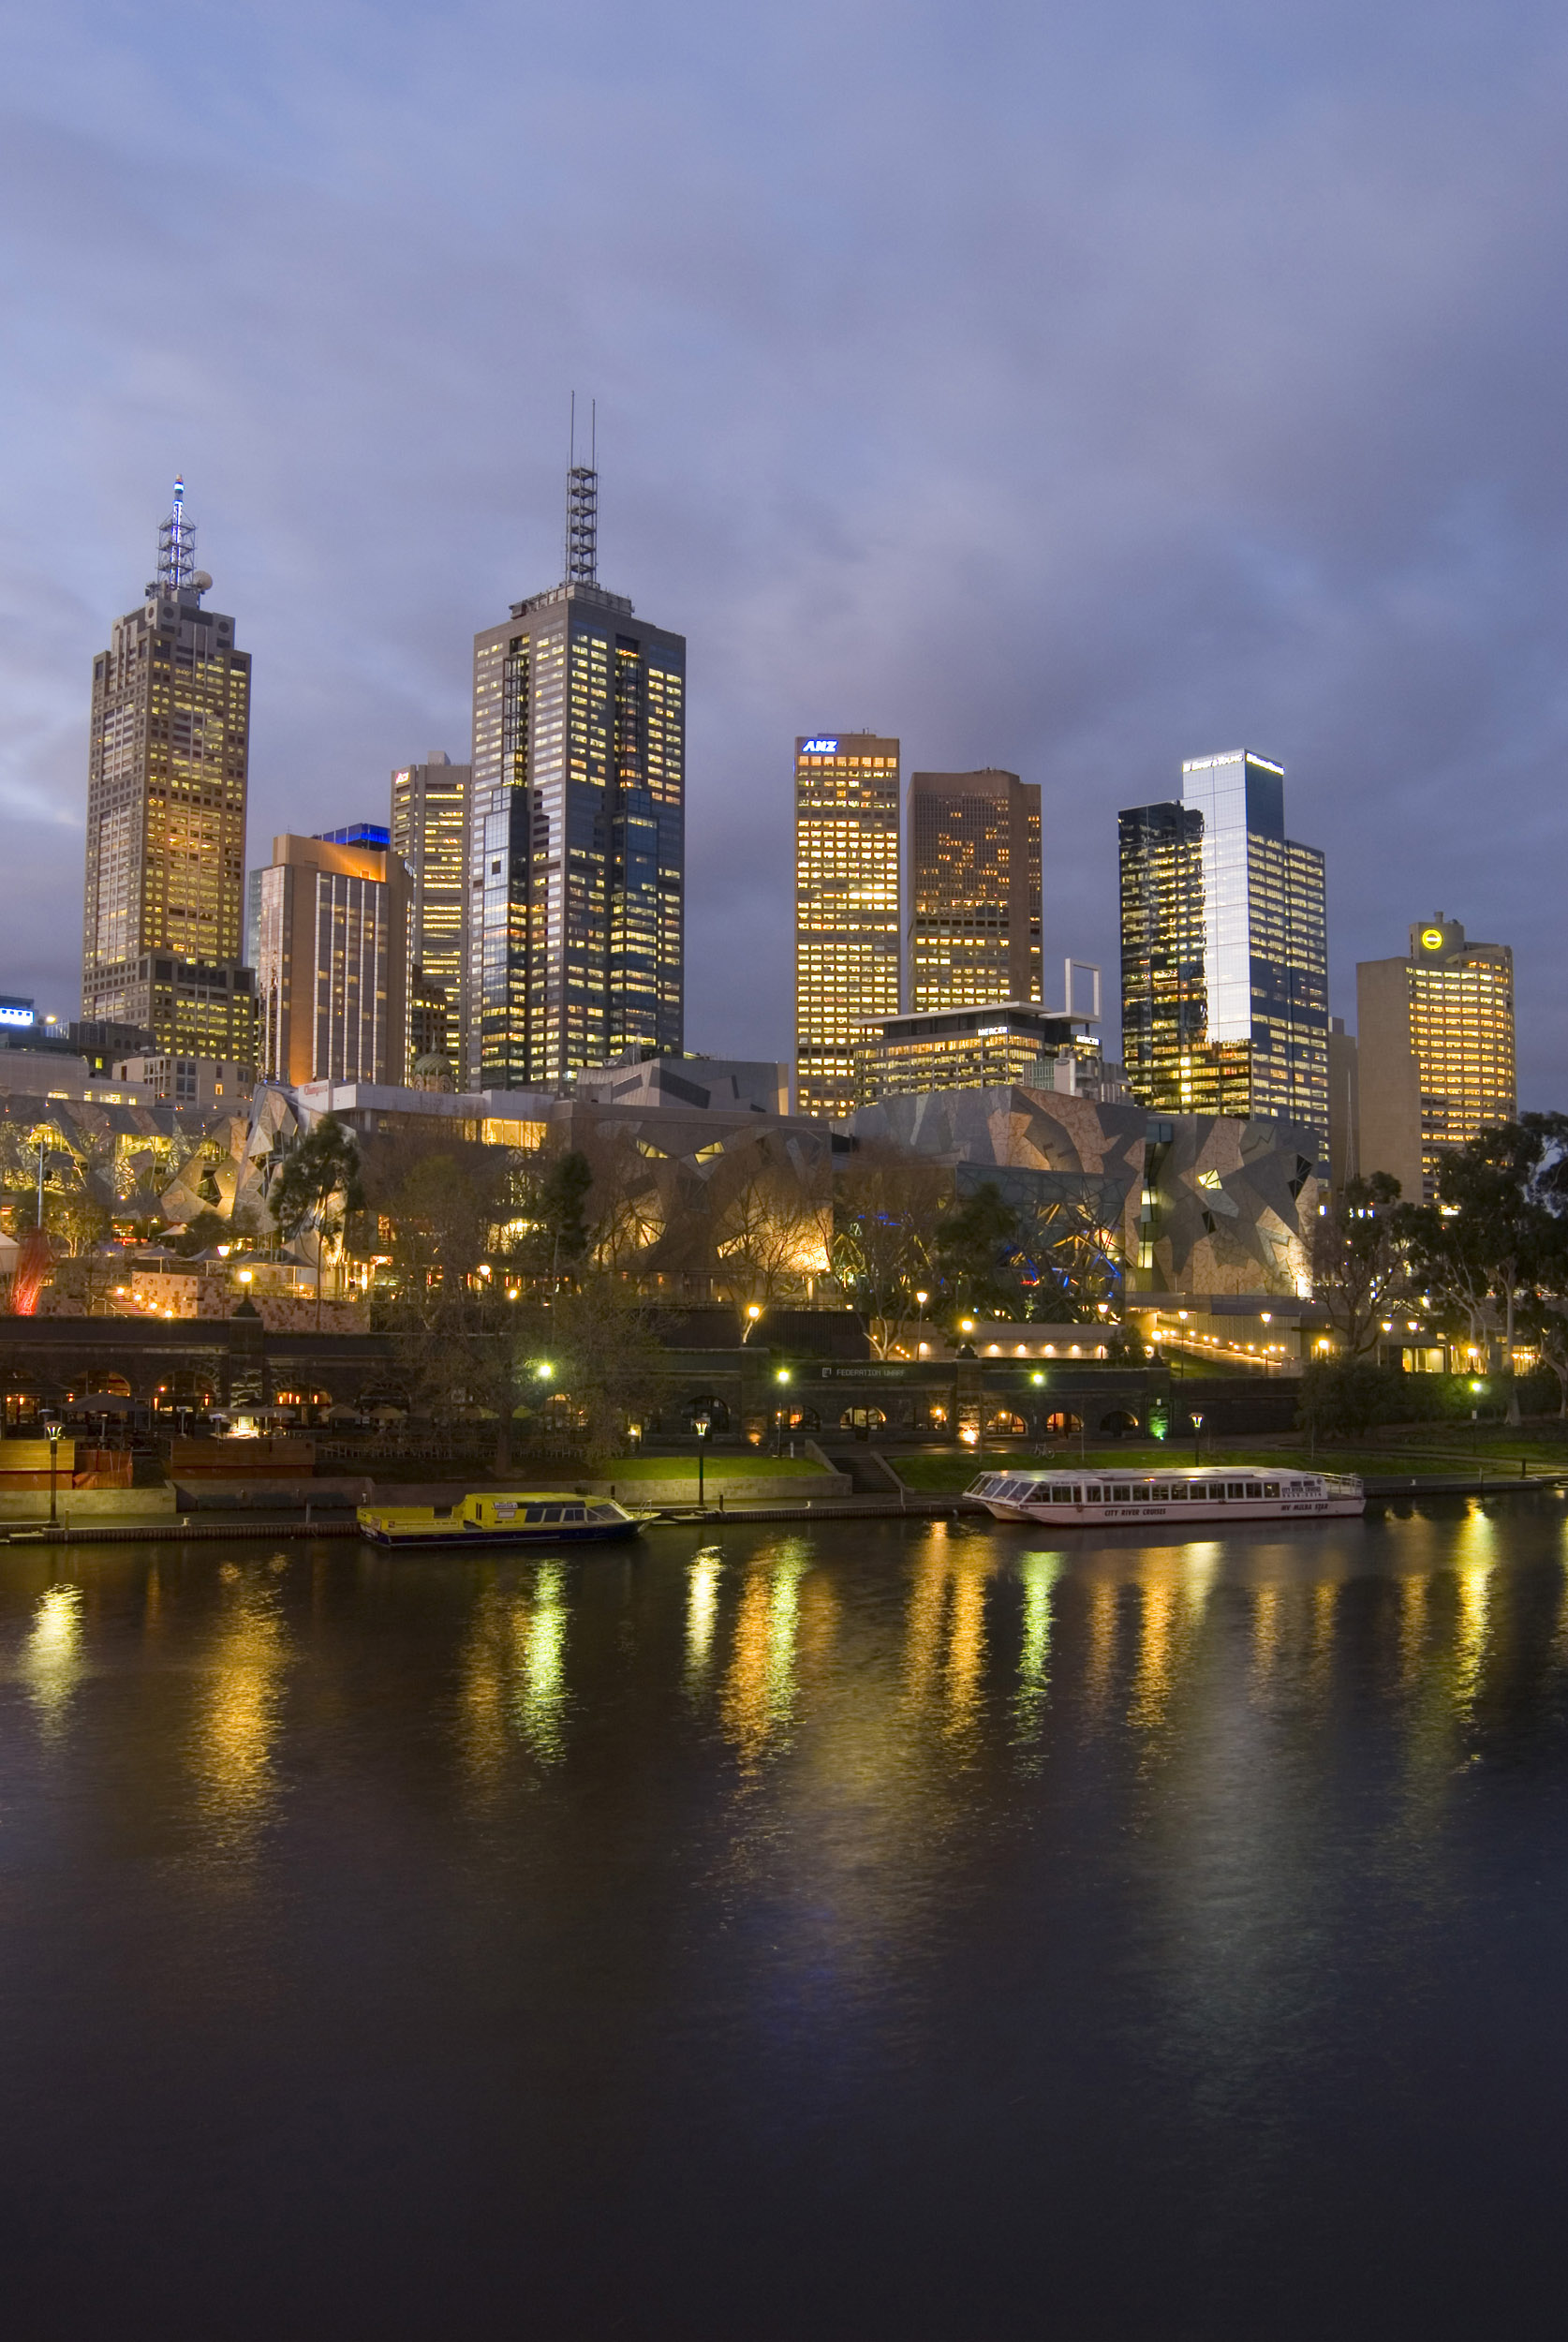 A portrait of the beautiful Yarra River and illuminated Melbourne city skyscrapers at night.